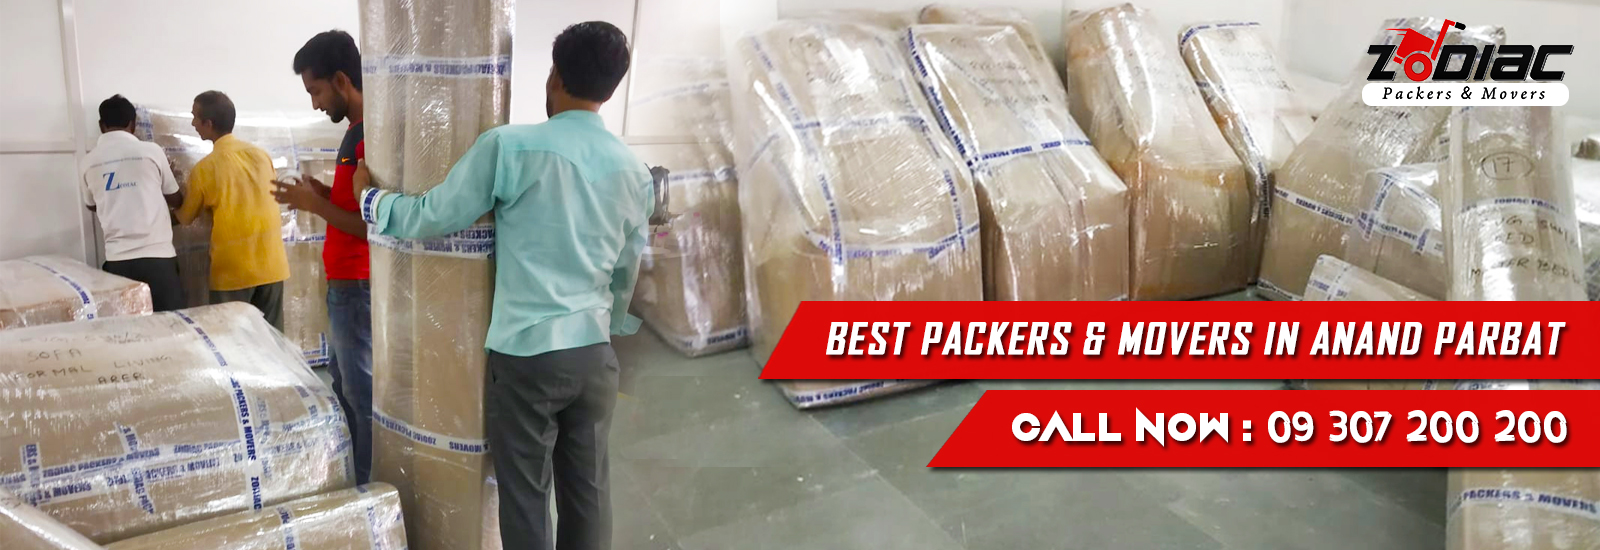 packers and movers in anand parbat